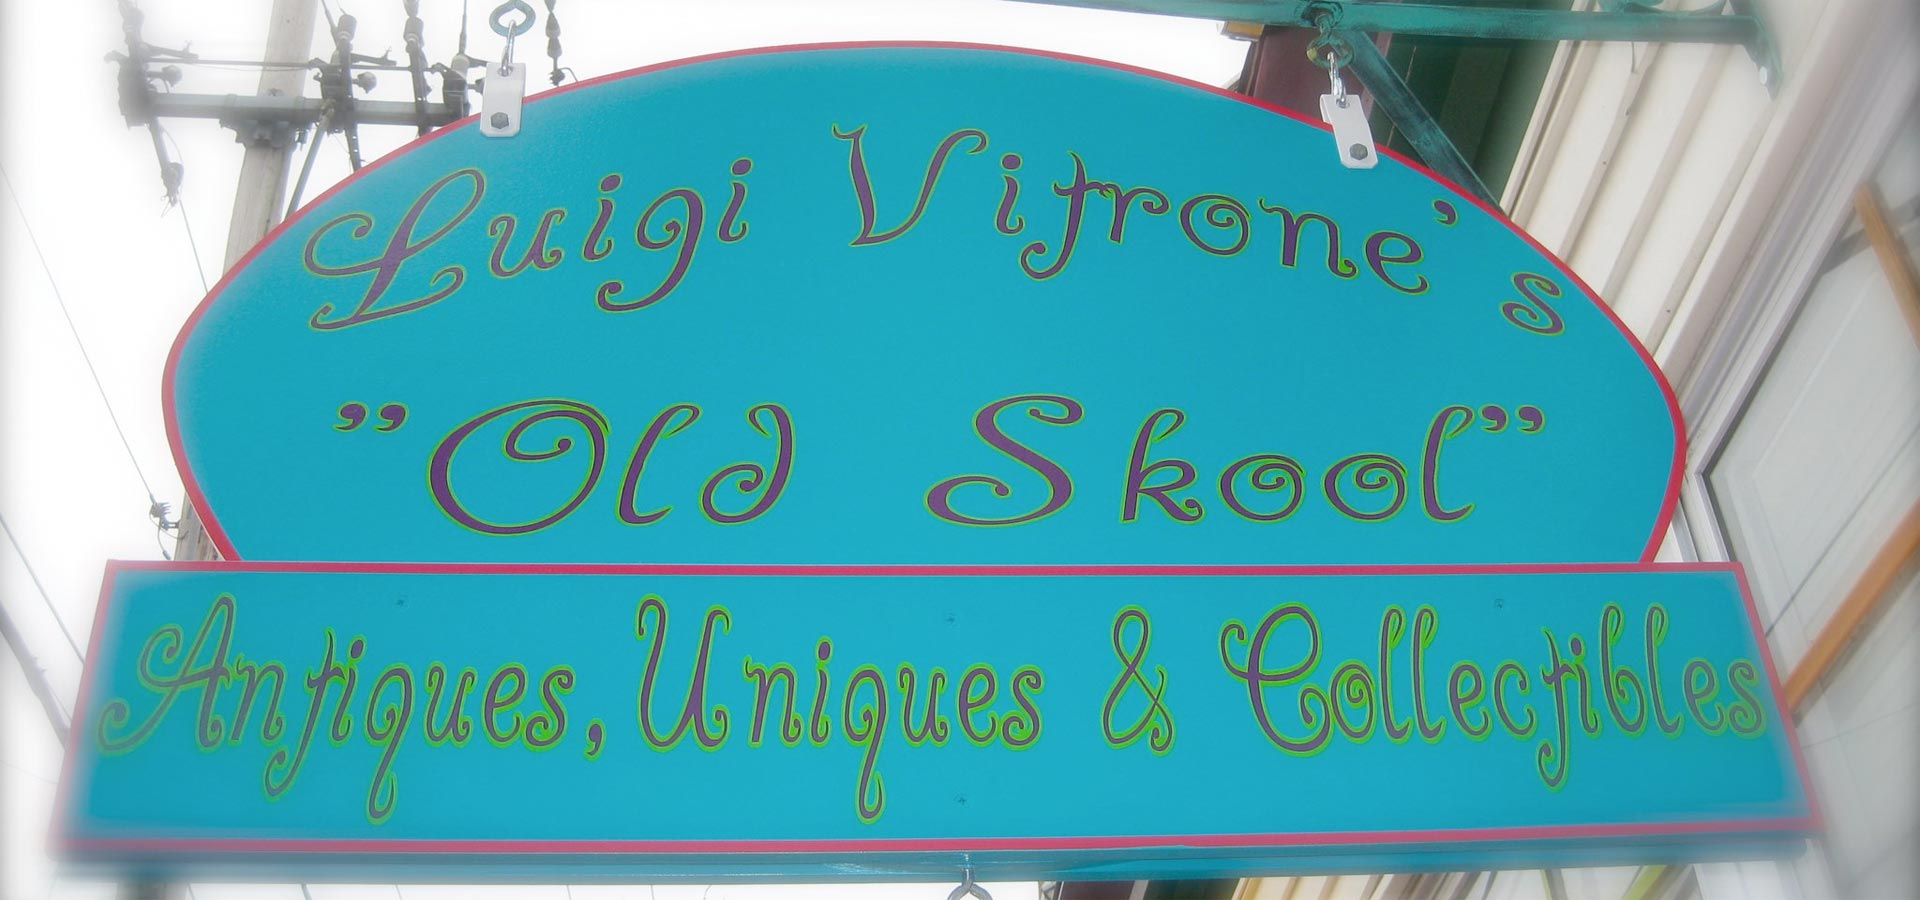 Luigi Vitrone's Old Skool Antiques